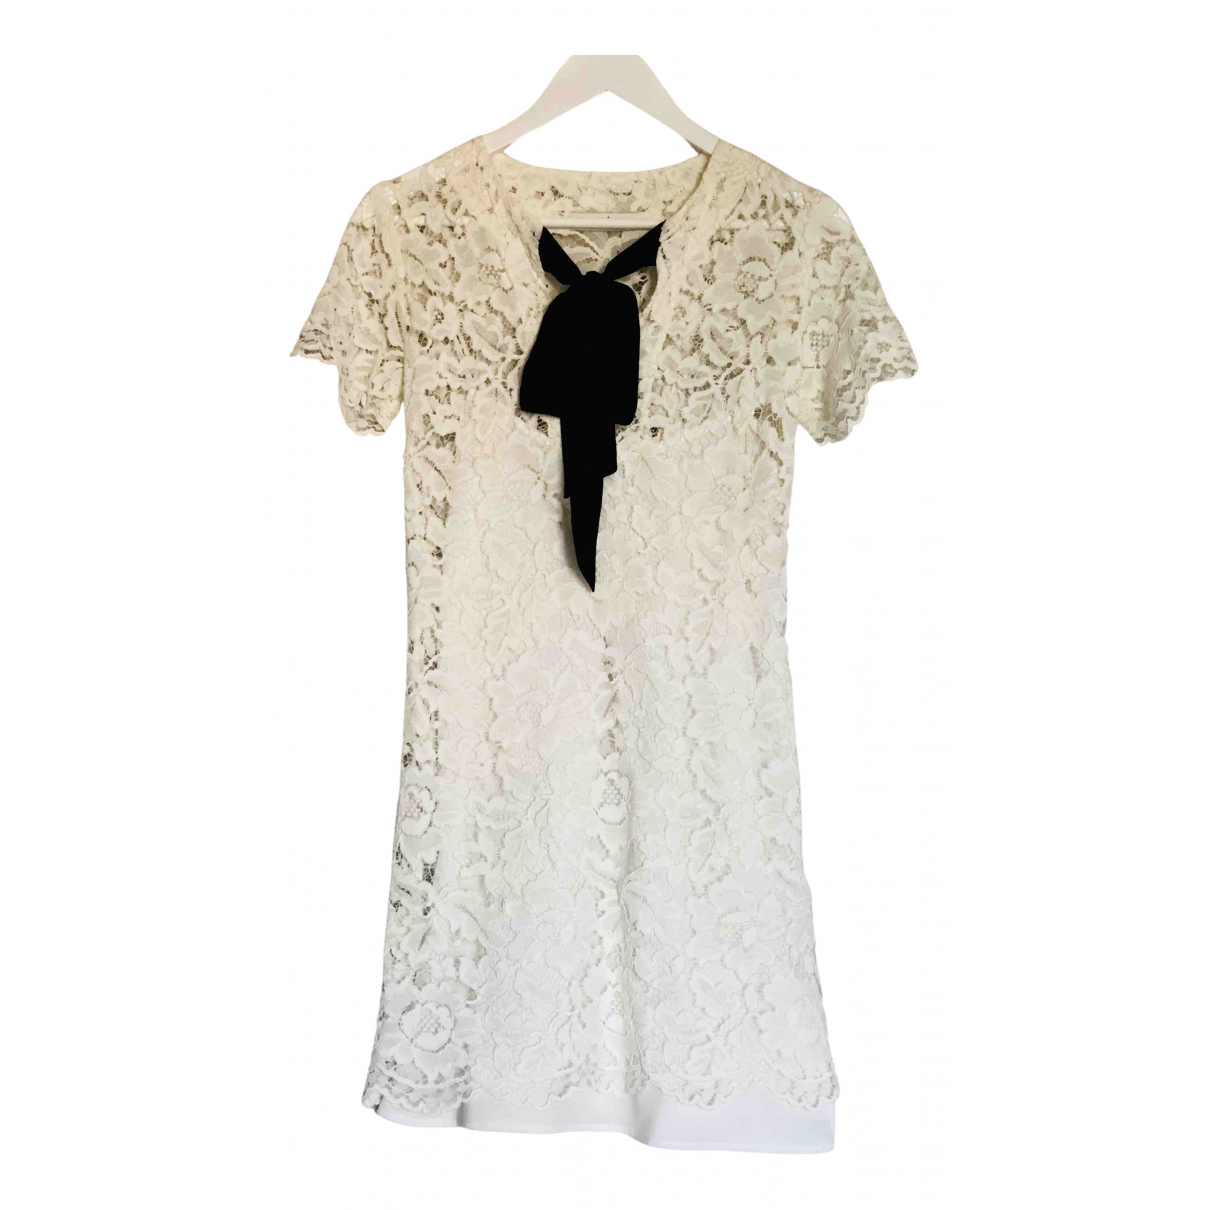 Sandro \N White Lace dress for Women 1 0-5